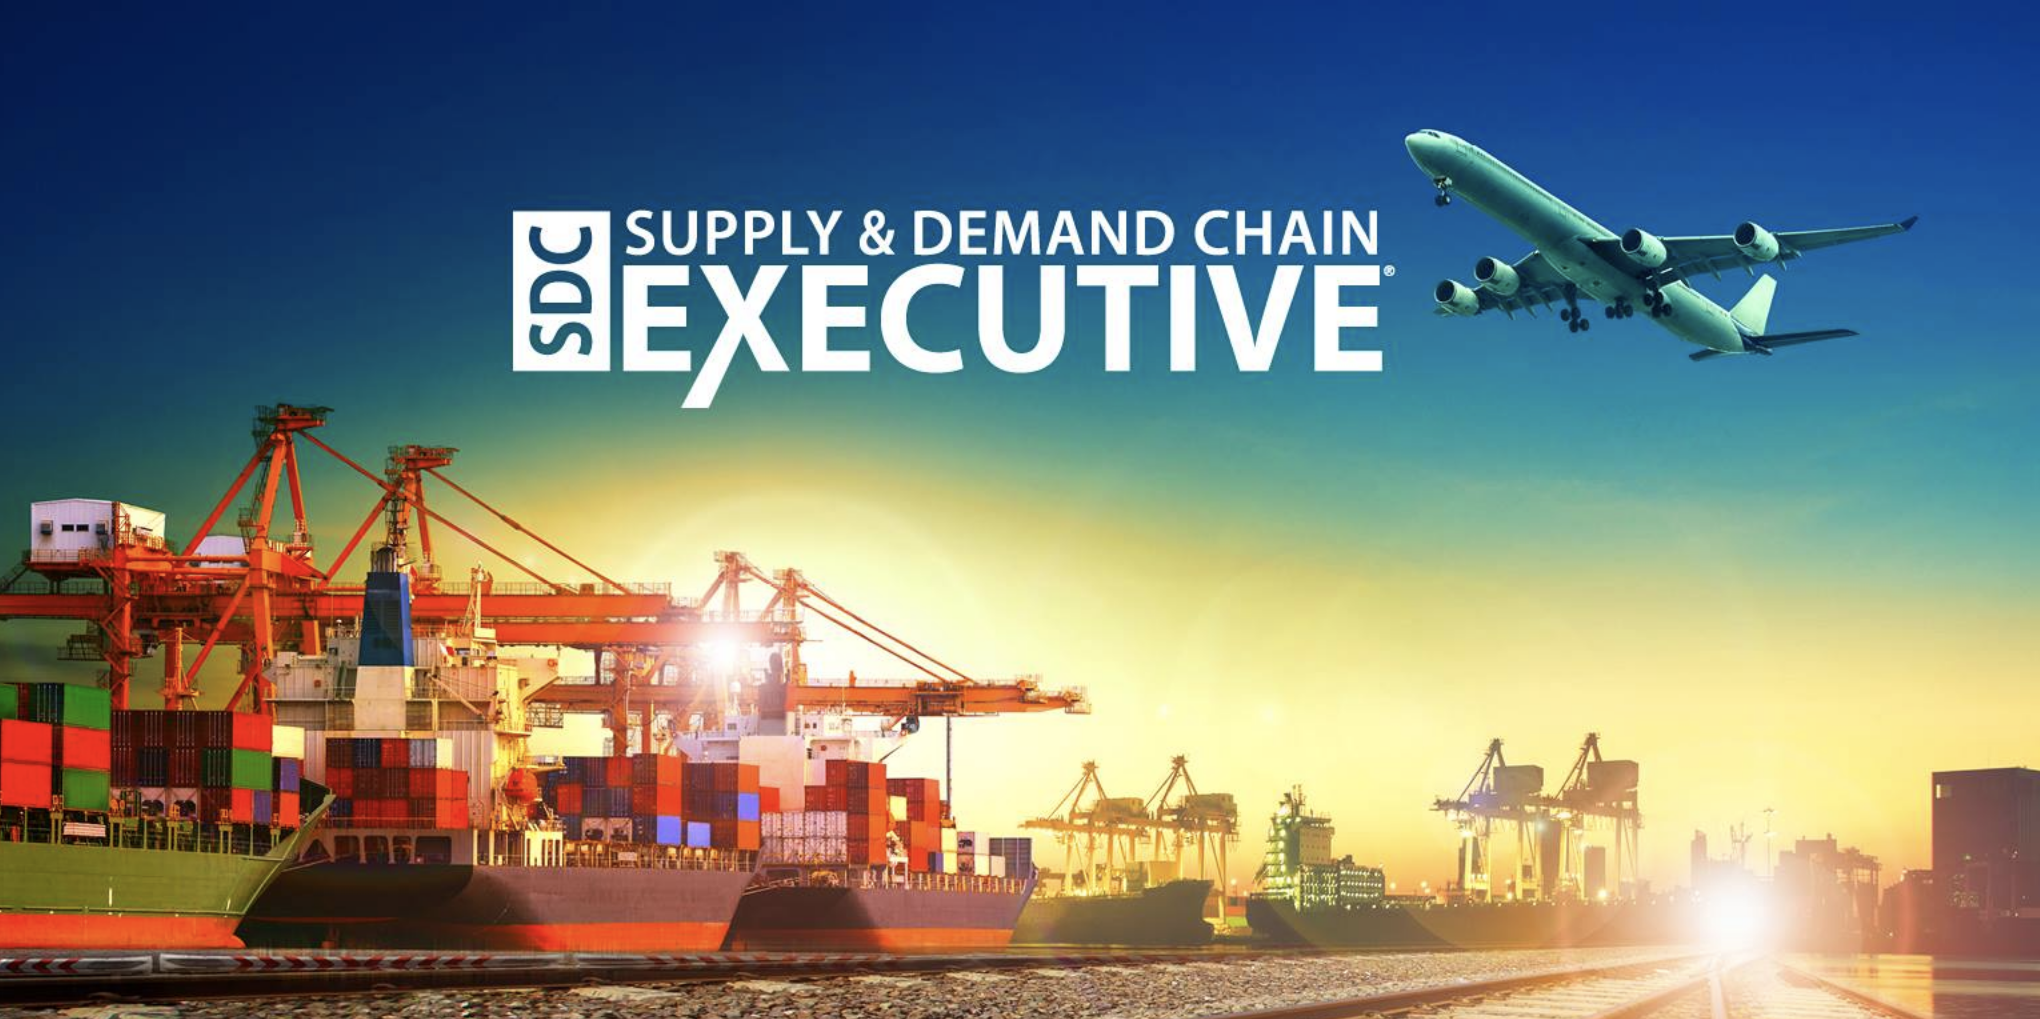 Avatar - Supply & Demand Chain Executive